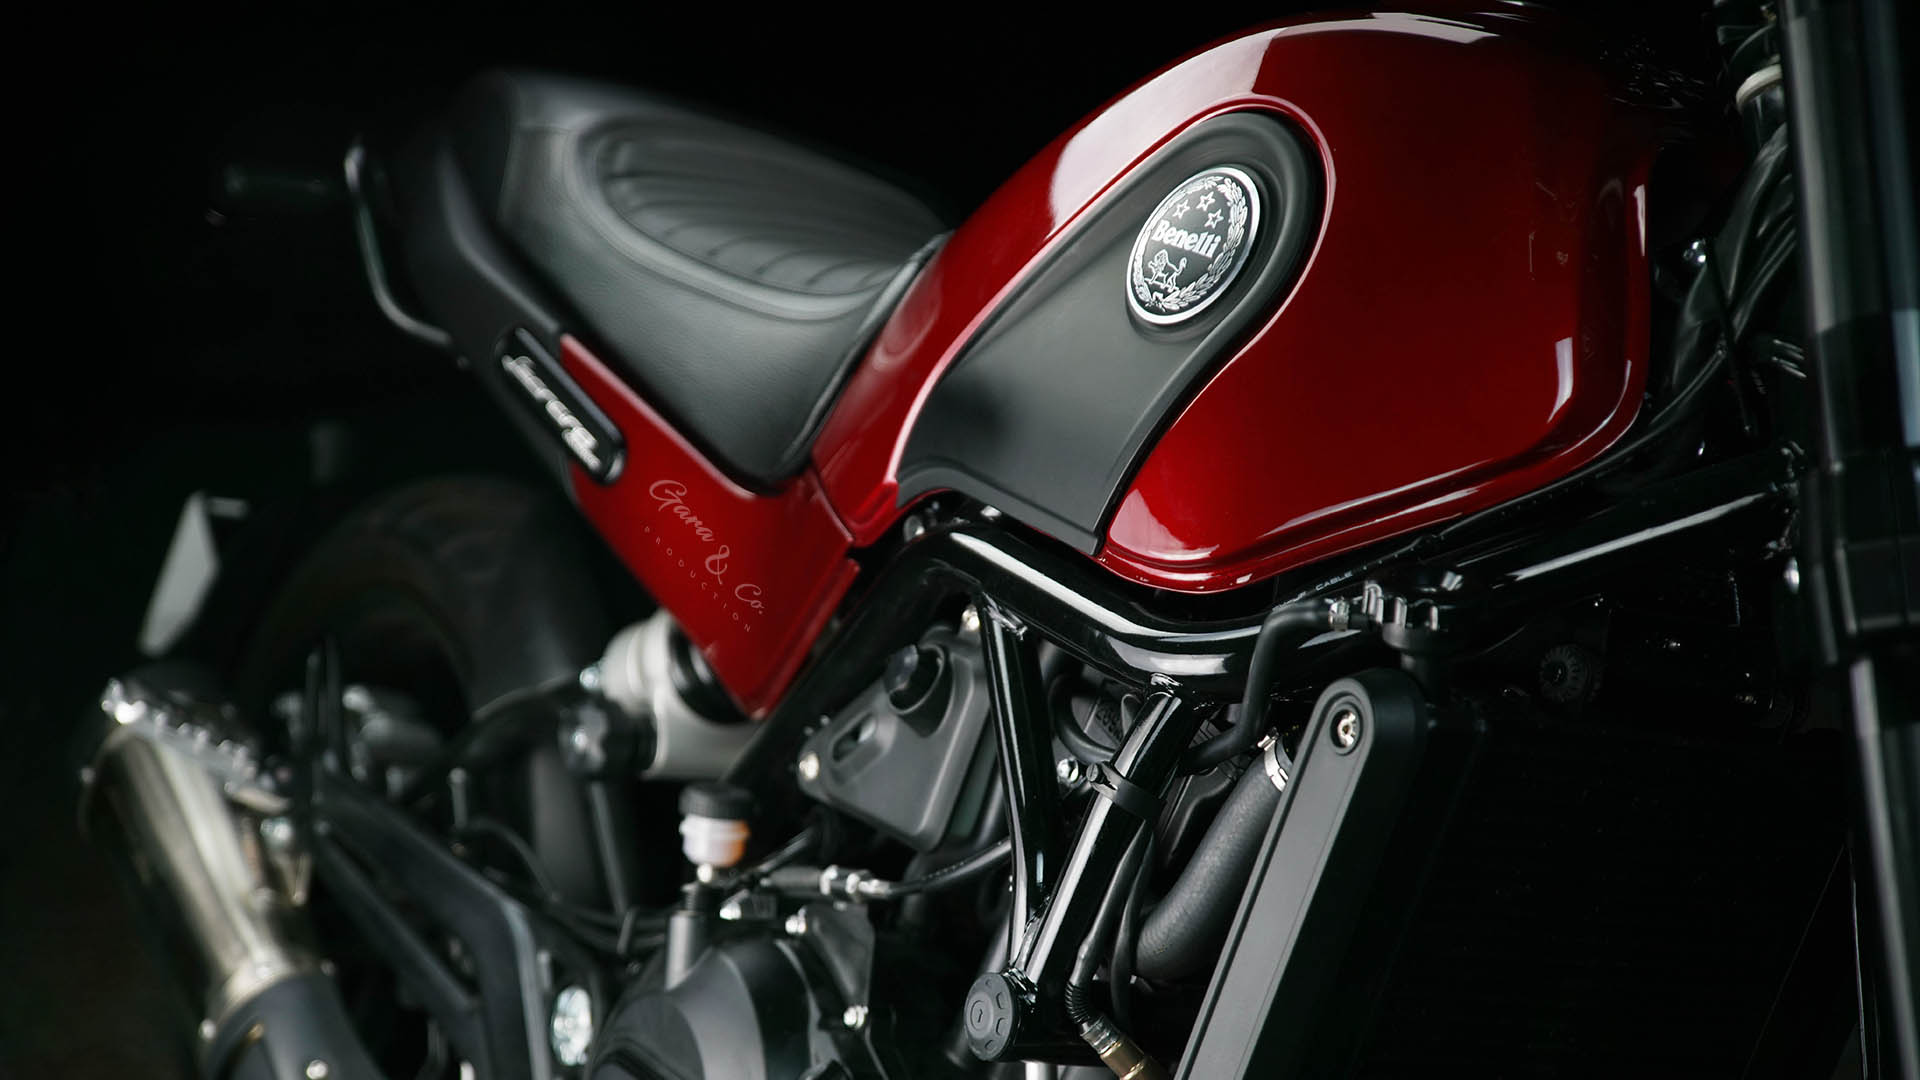 Benelli Leoncino side view photography